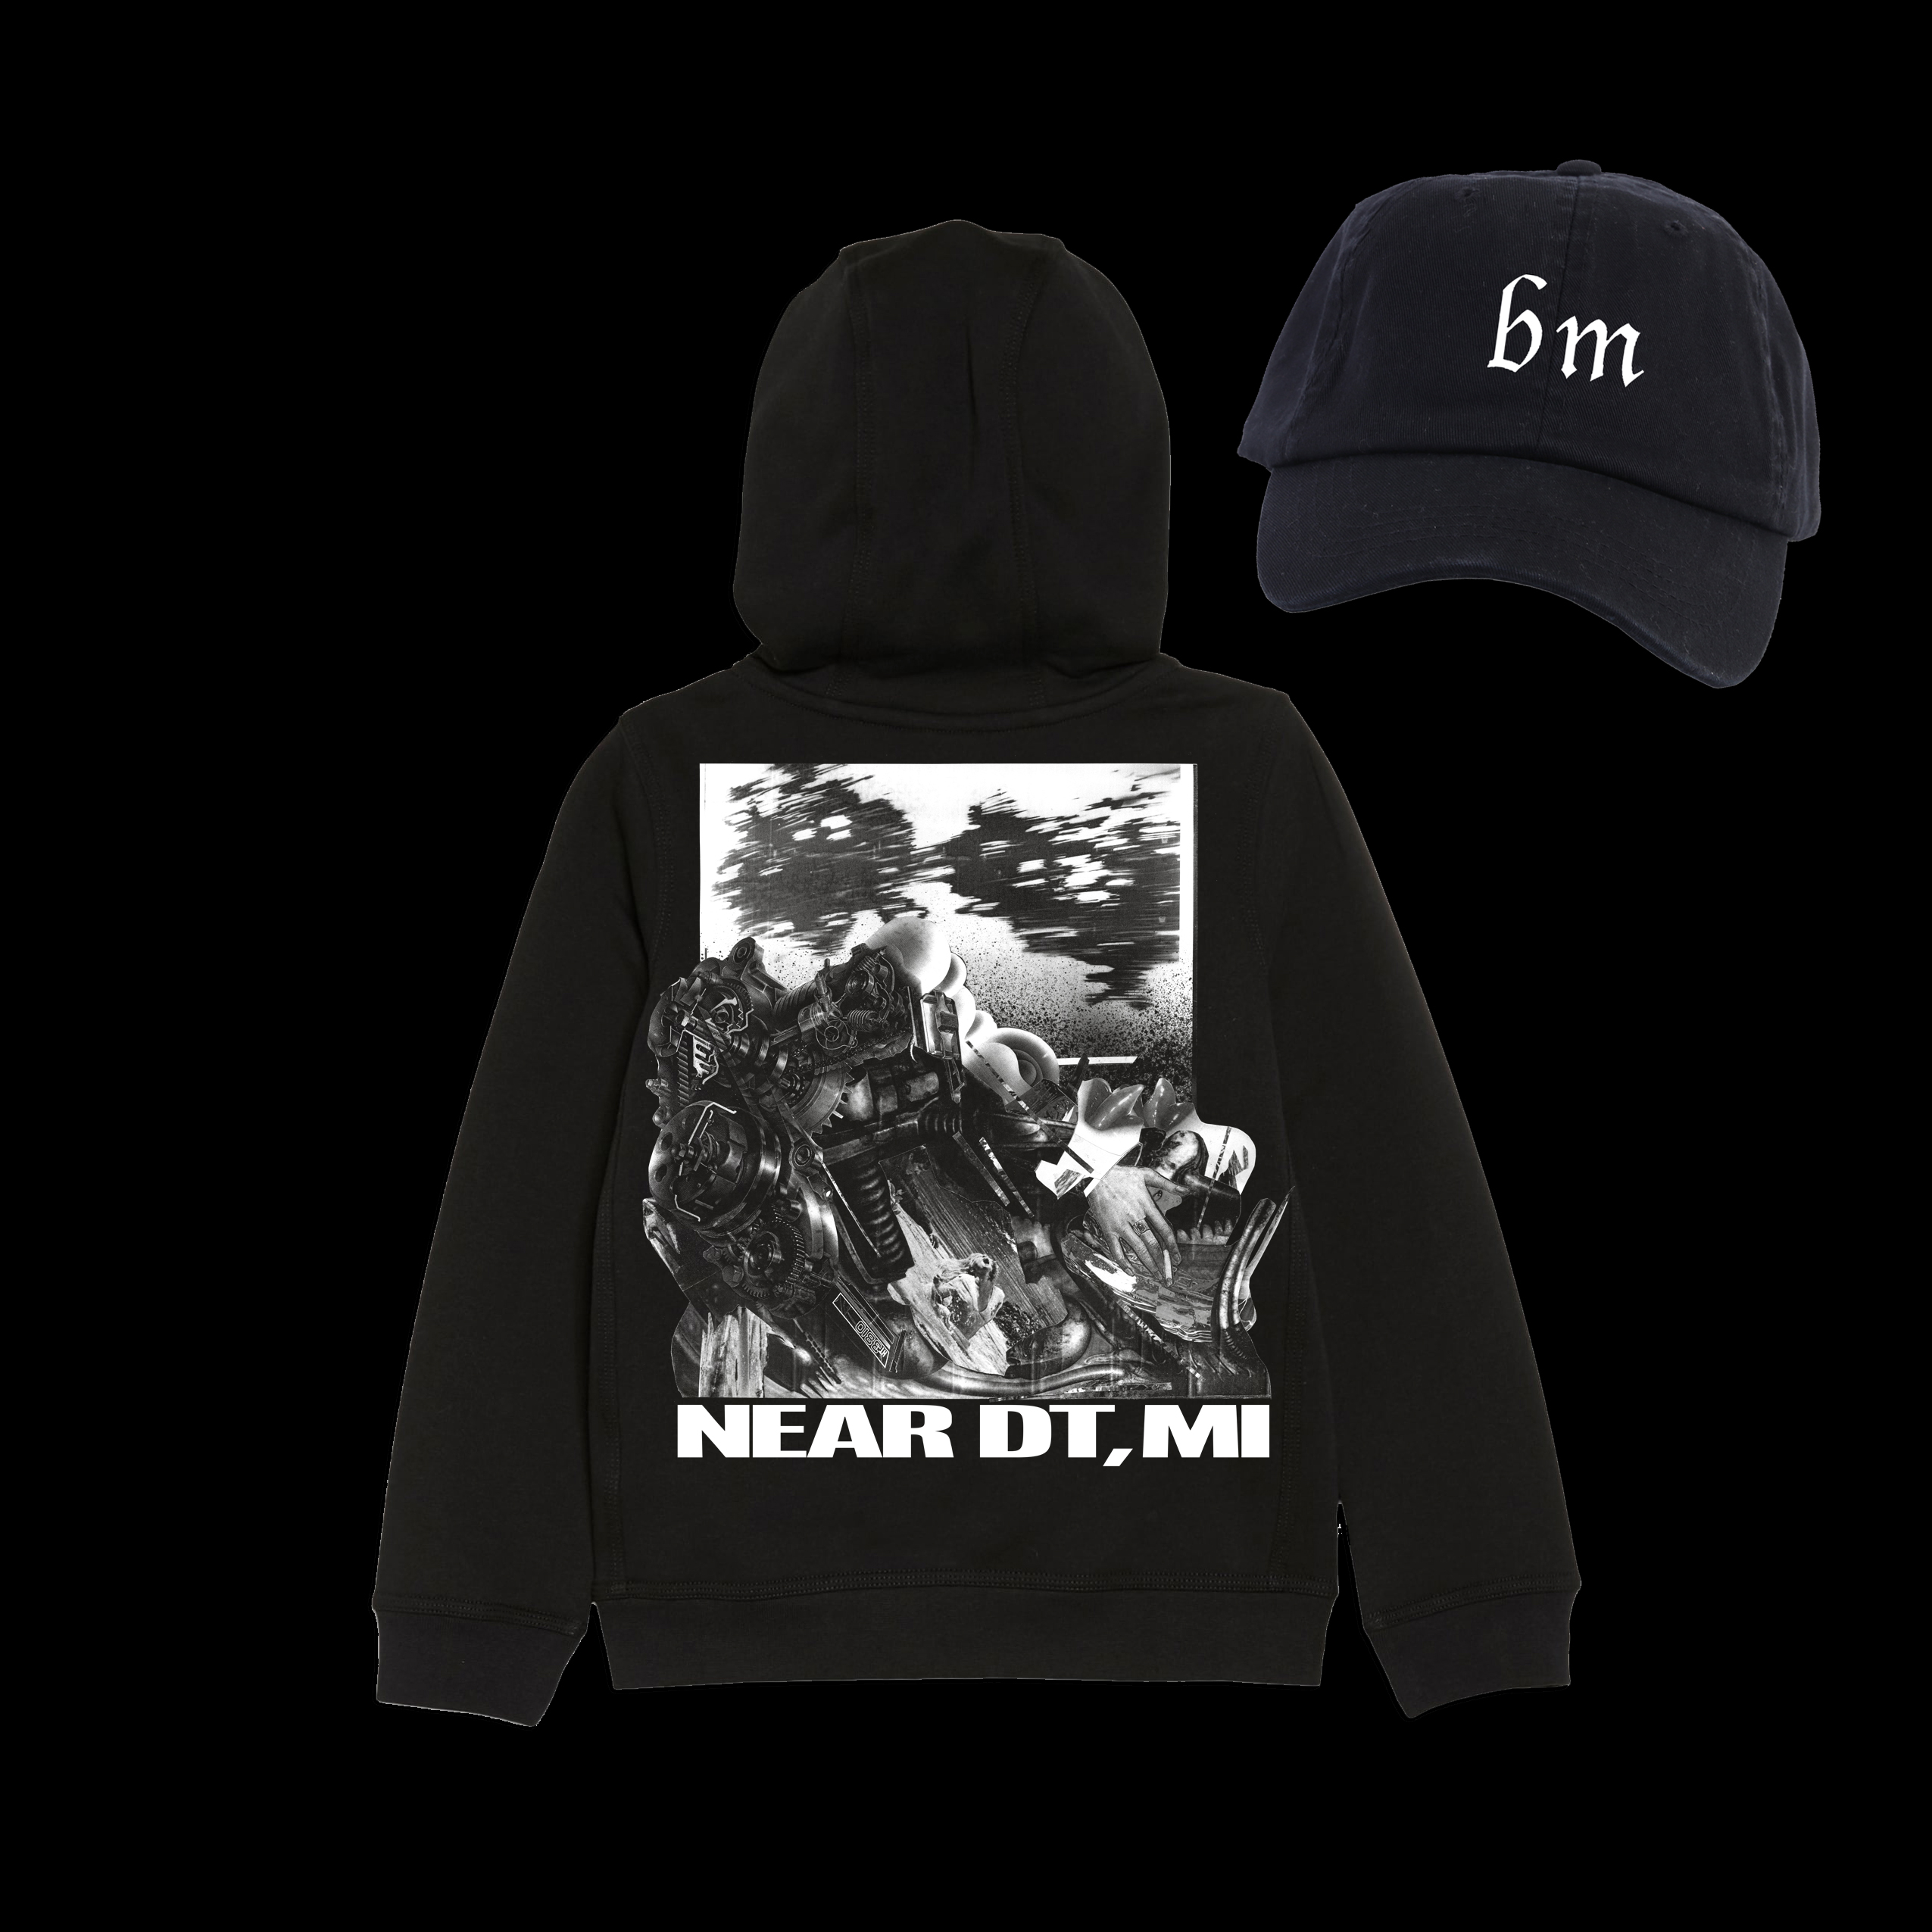 bm cap + Near DT, MI Hoody Bundle